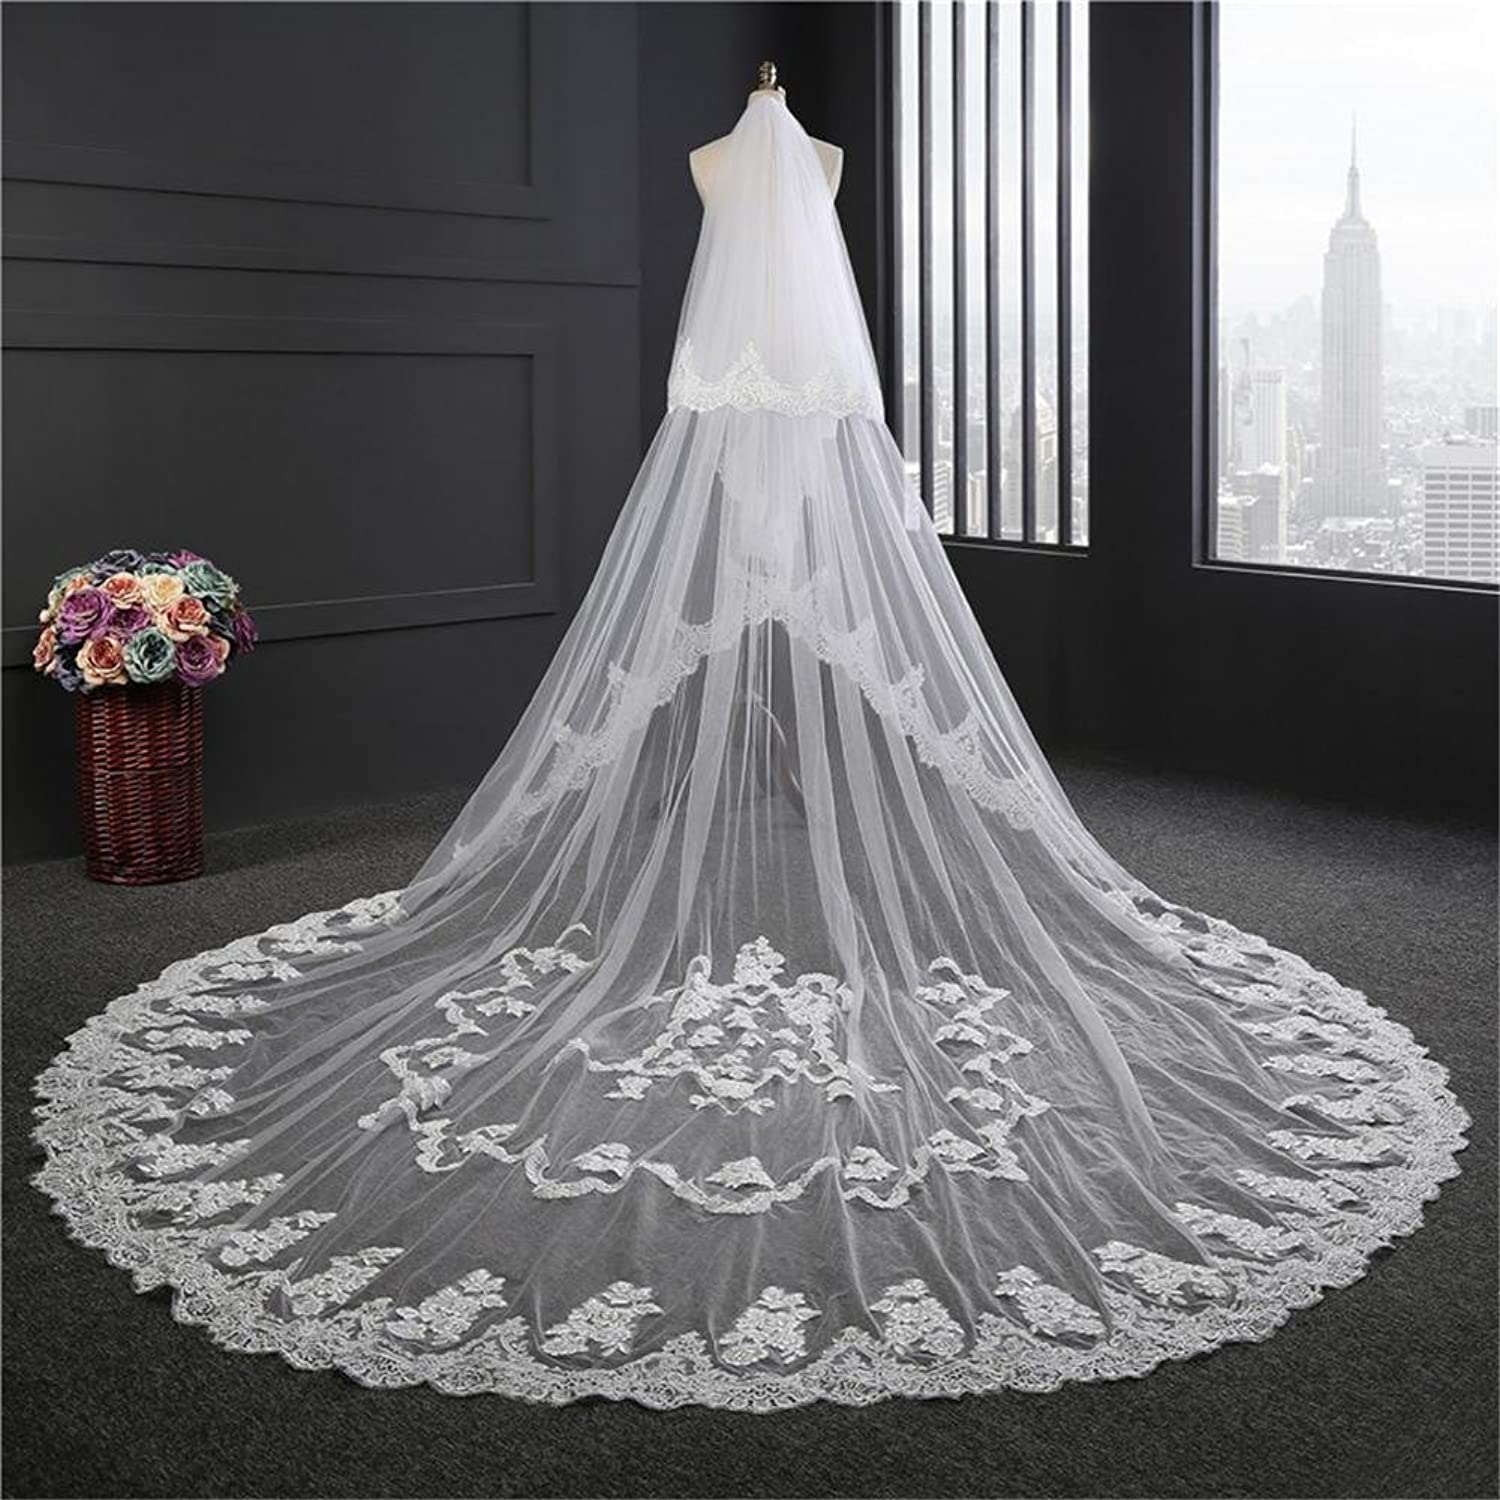 Bridal Veils 3.5 Meters Long 3M Width Wedding Bride Veil White Ivory Lace Edge With Comb Wedding Accessories